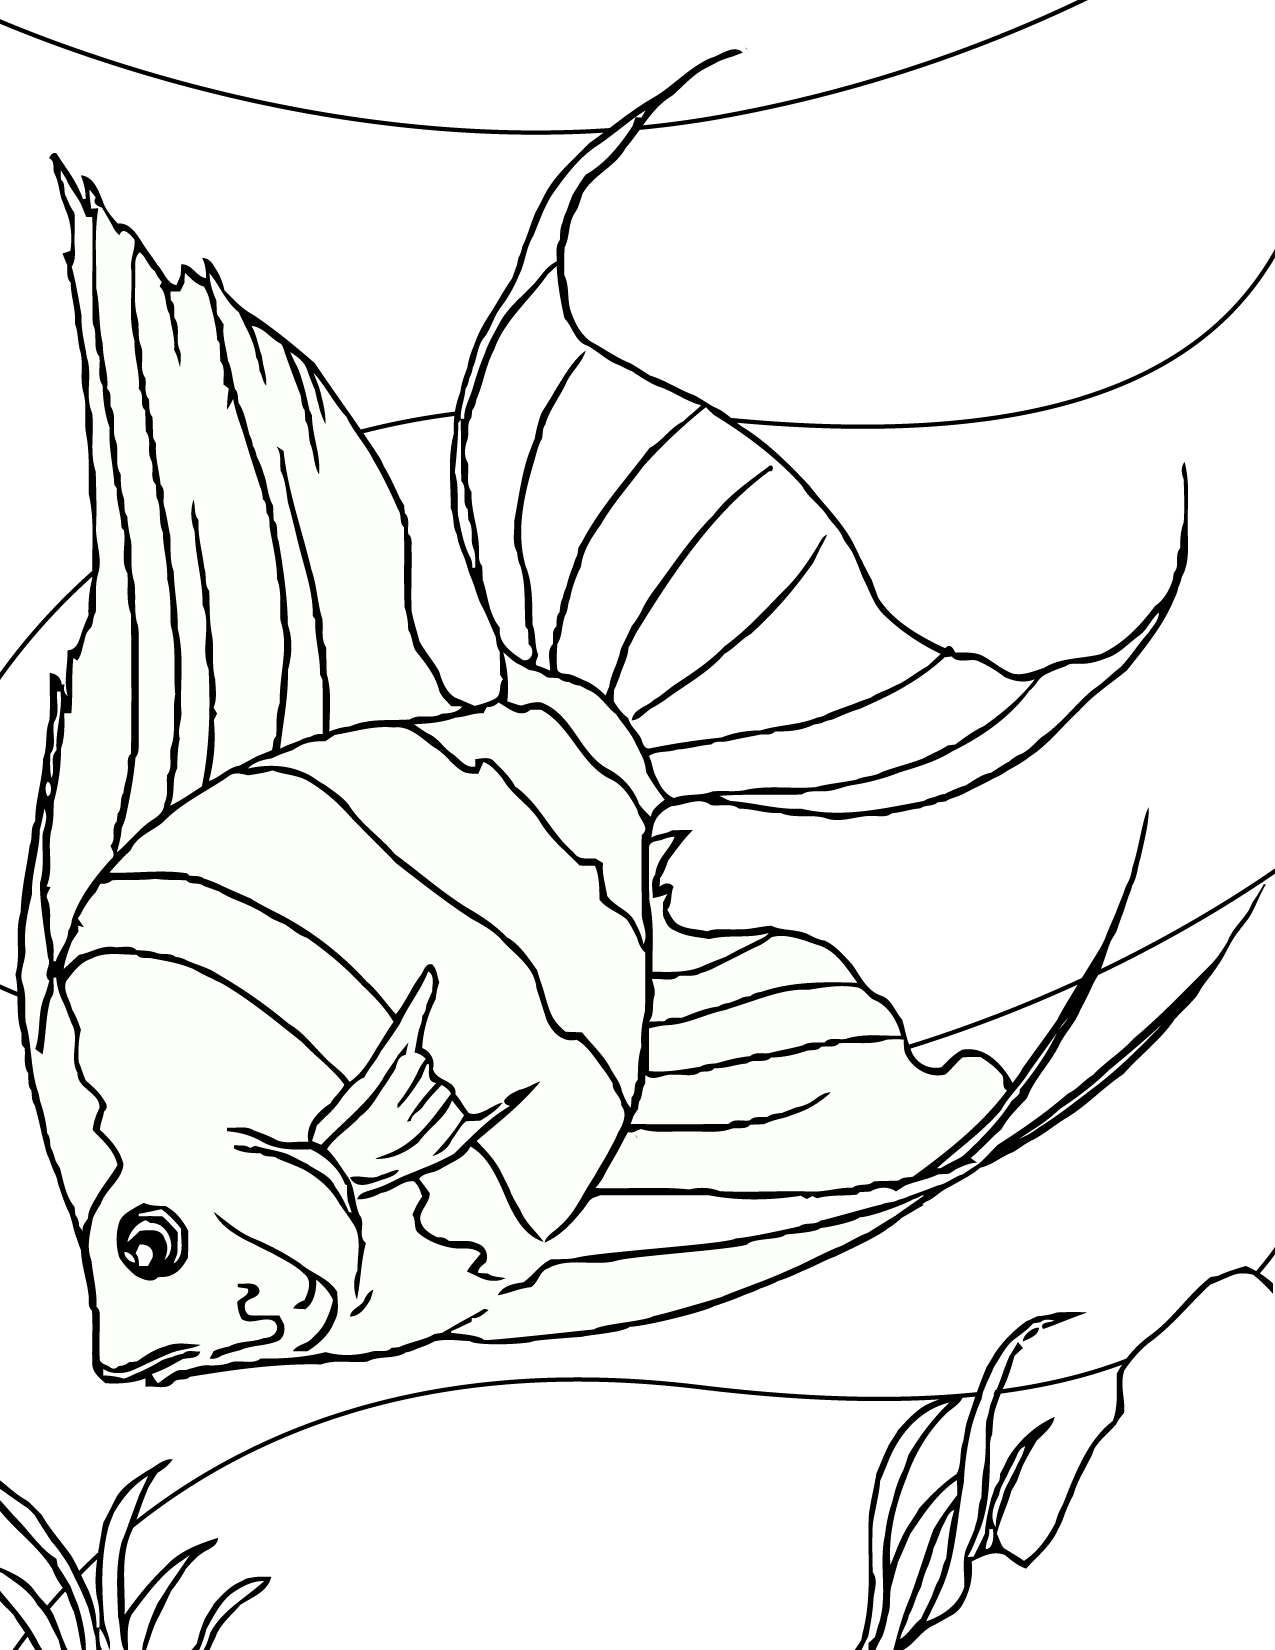 Free Printable Fish Coloring Pages For Kids Fish Coloring Page